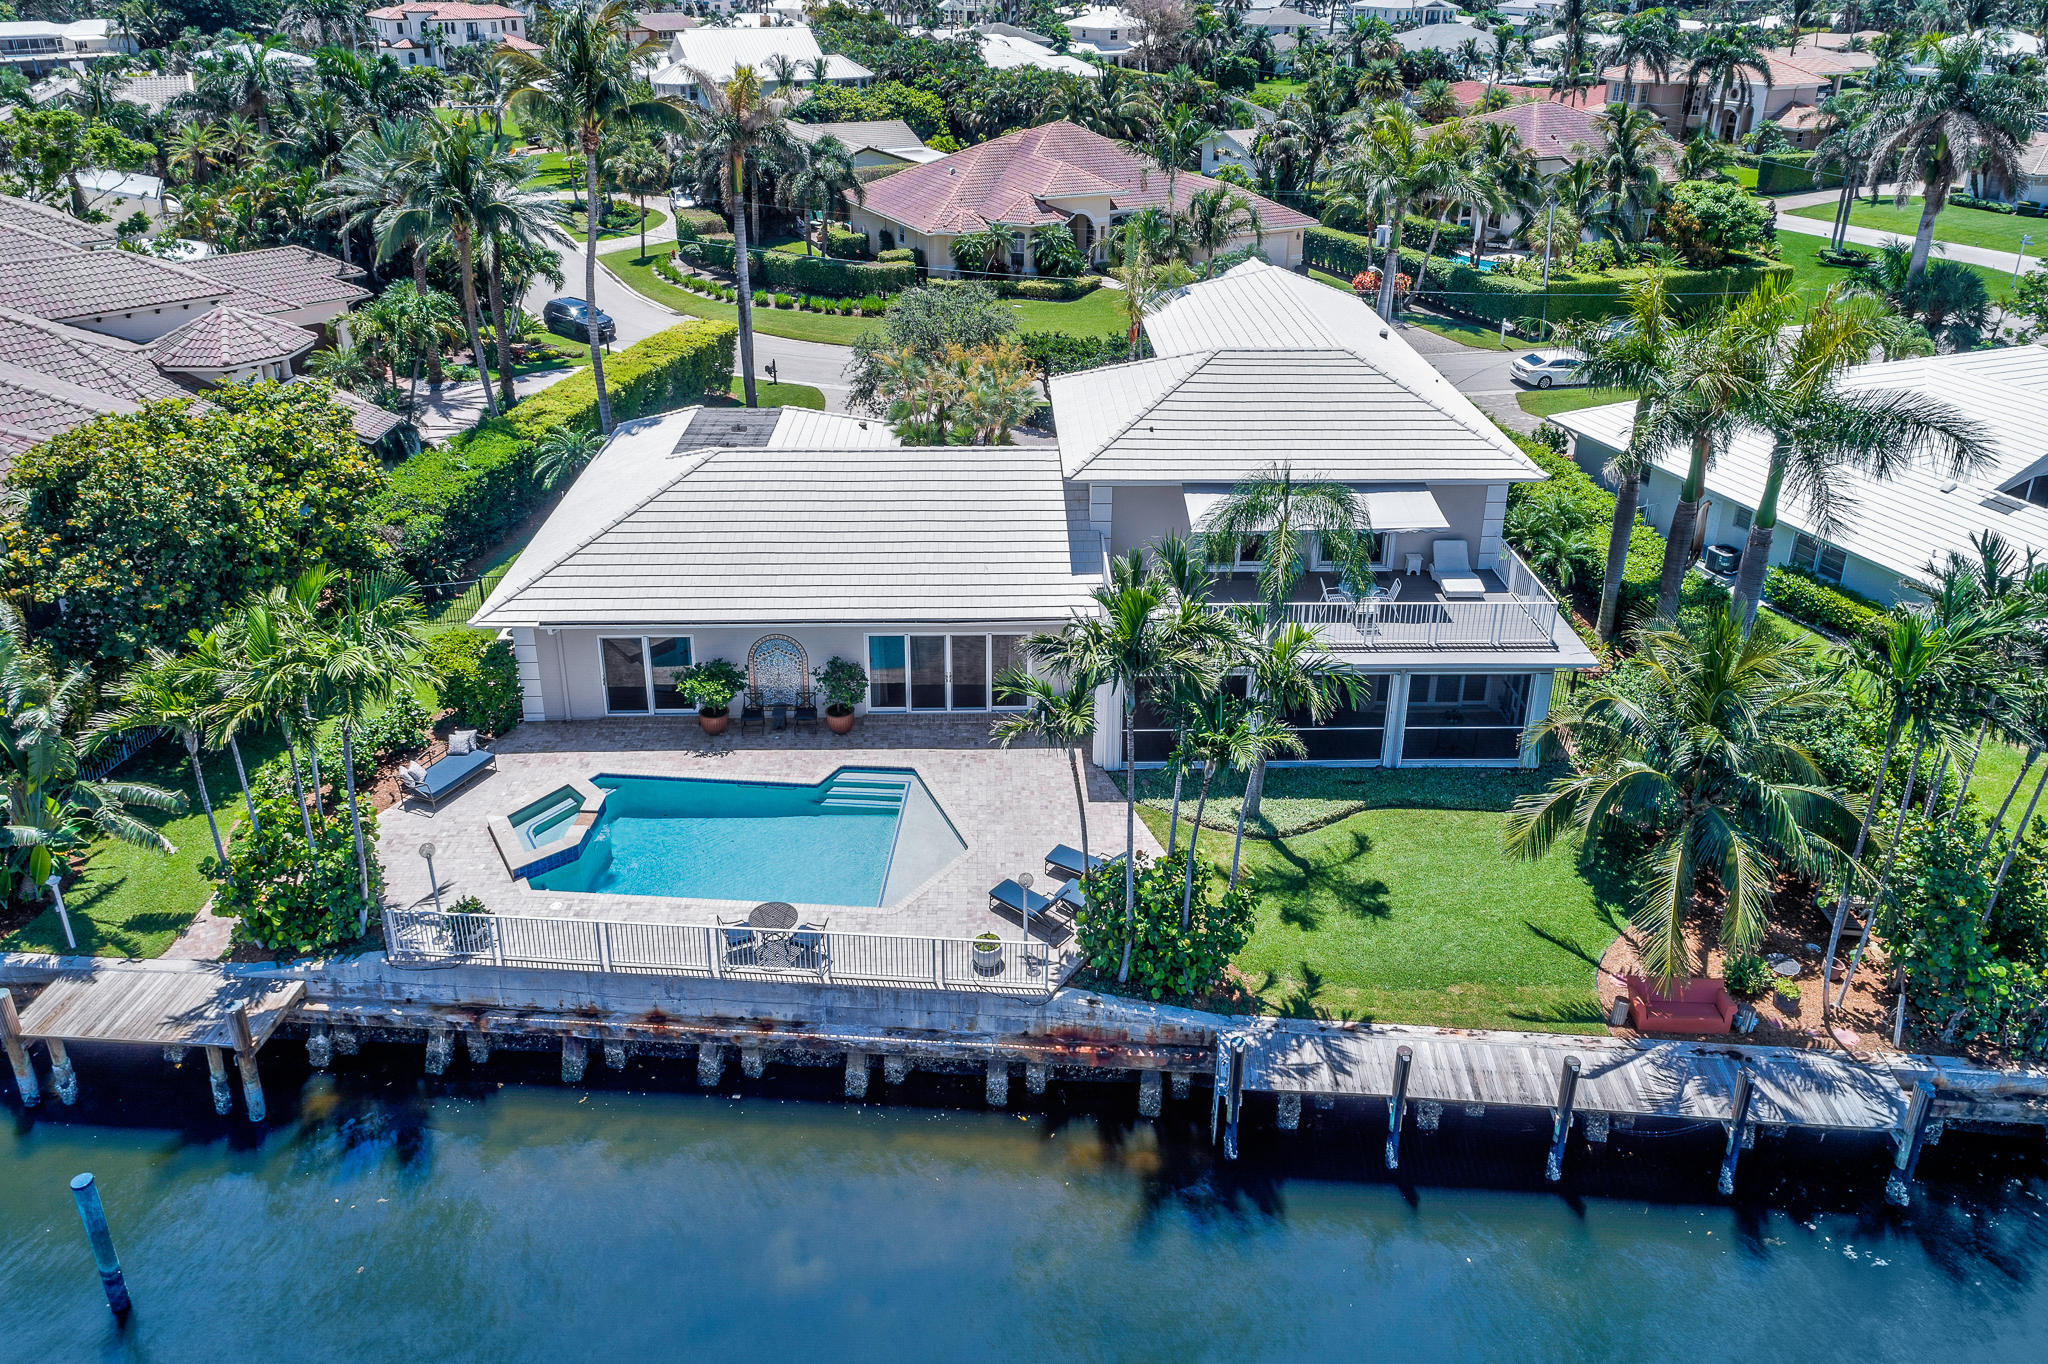 52 Spanish River Drive, Ocean Ridge, Florida 33435, 4 Bedrooms Bedrooms, ,4.1 BathroomsBathrooms,Single Family,For Sale,Spanish River,RX-10442665